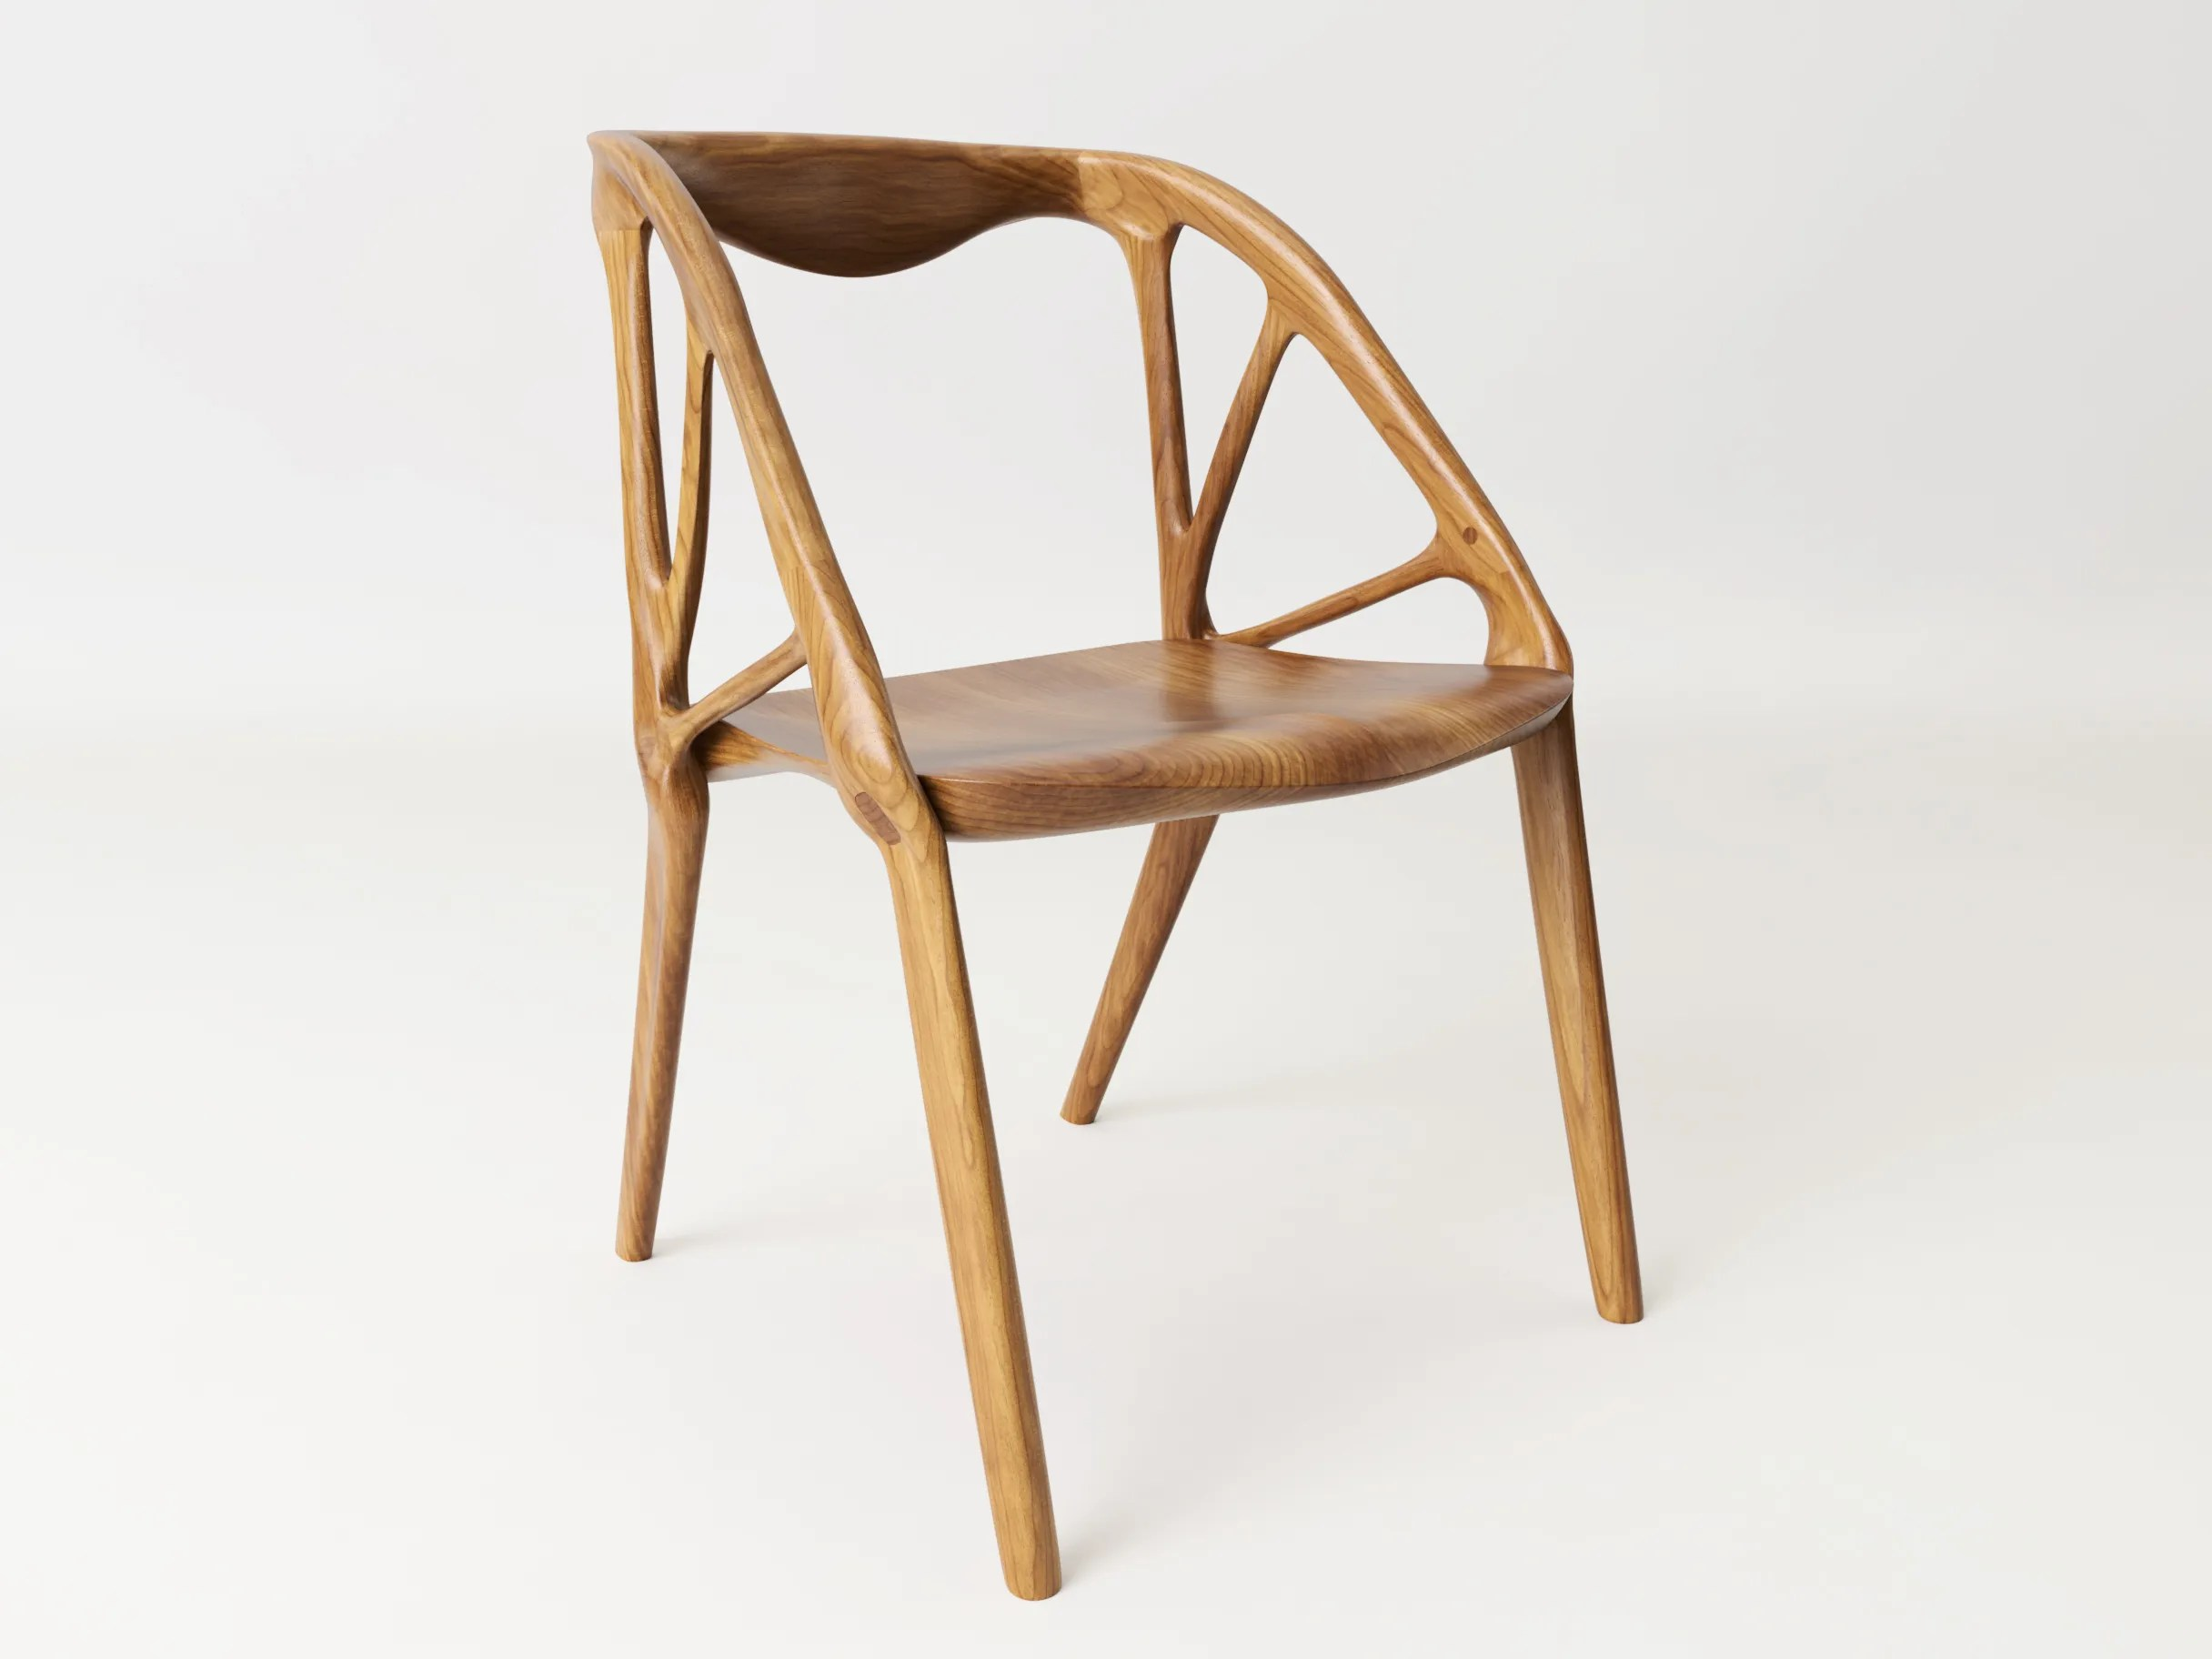 Designer Chairs Used So Algorithms Are Designing Chairs Now Wired